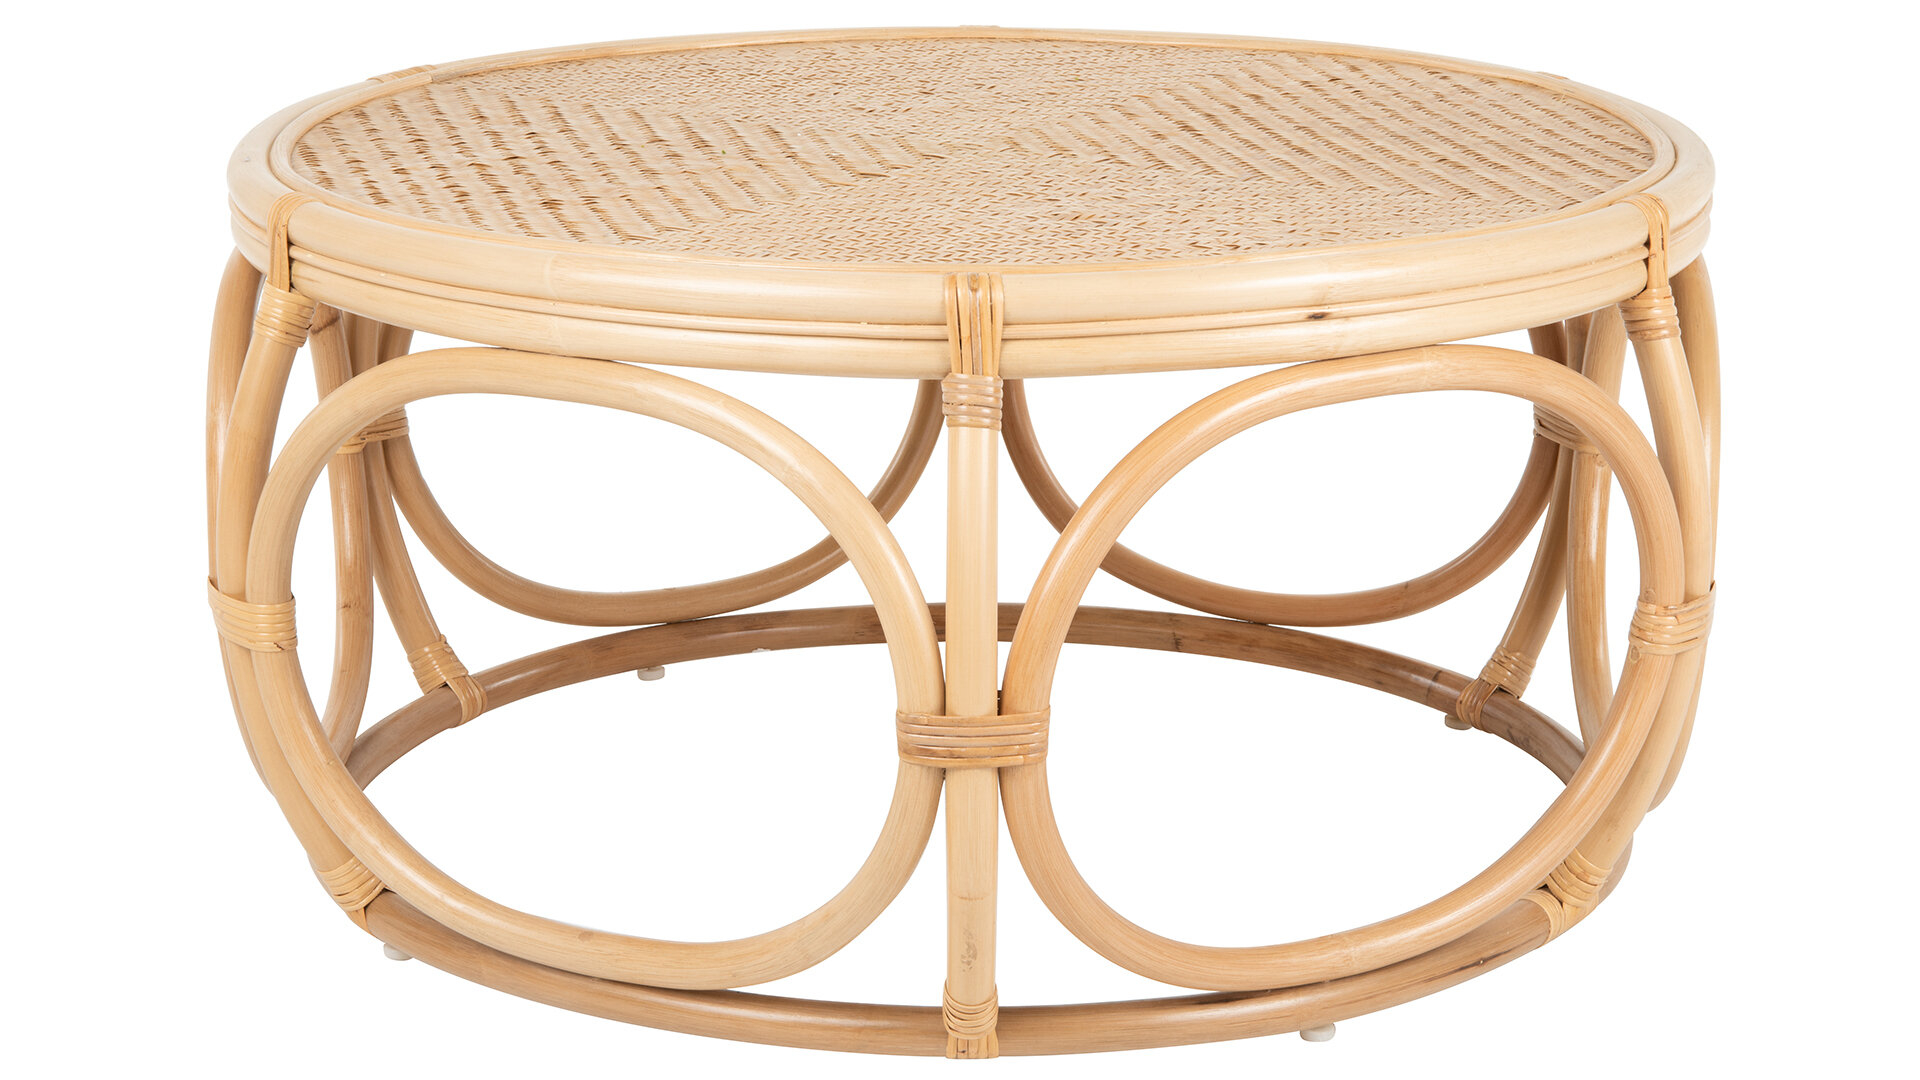 Bayou Breeze Melton Rattan Coffee Table Wayfair regarding dimensions 1920 X 1080